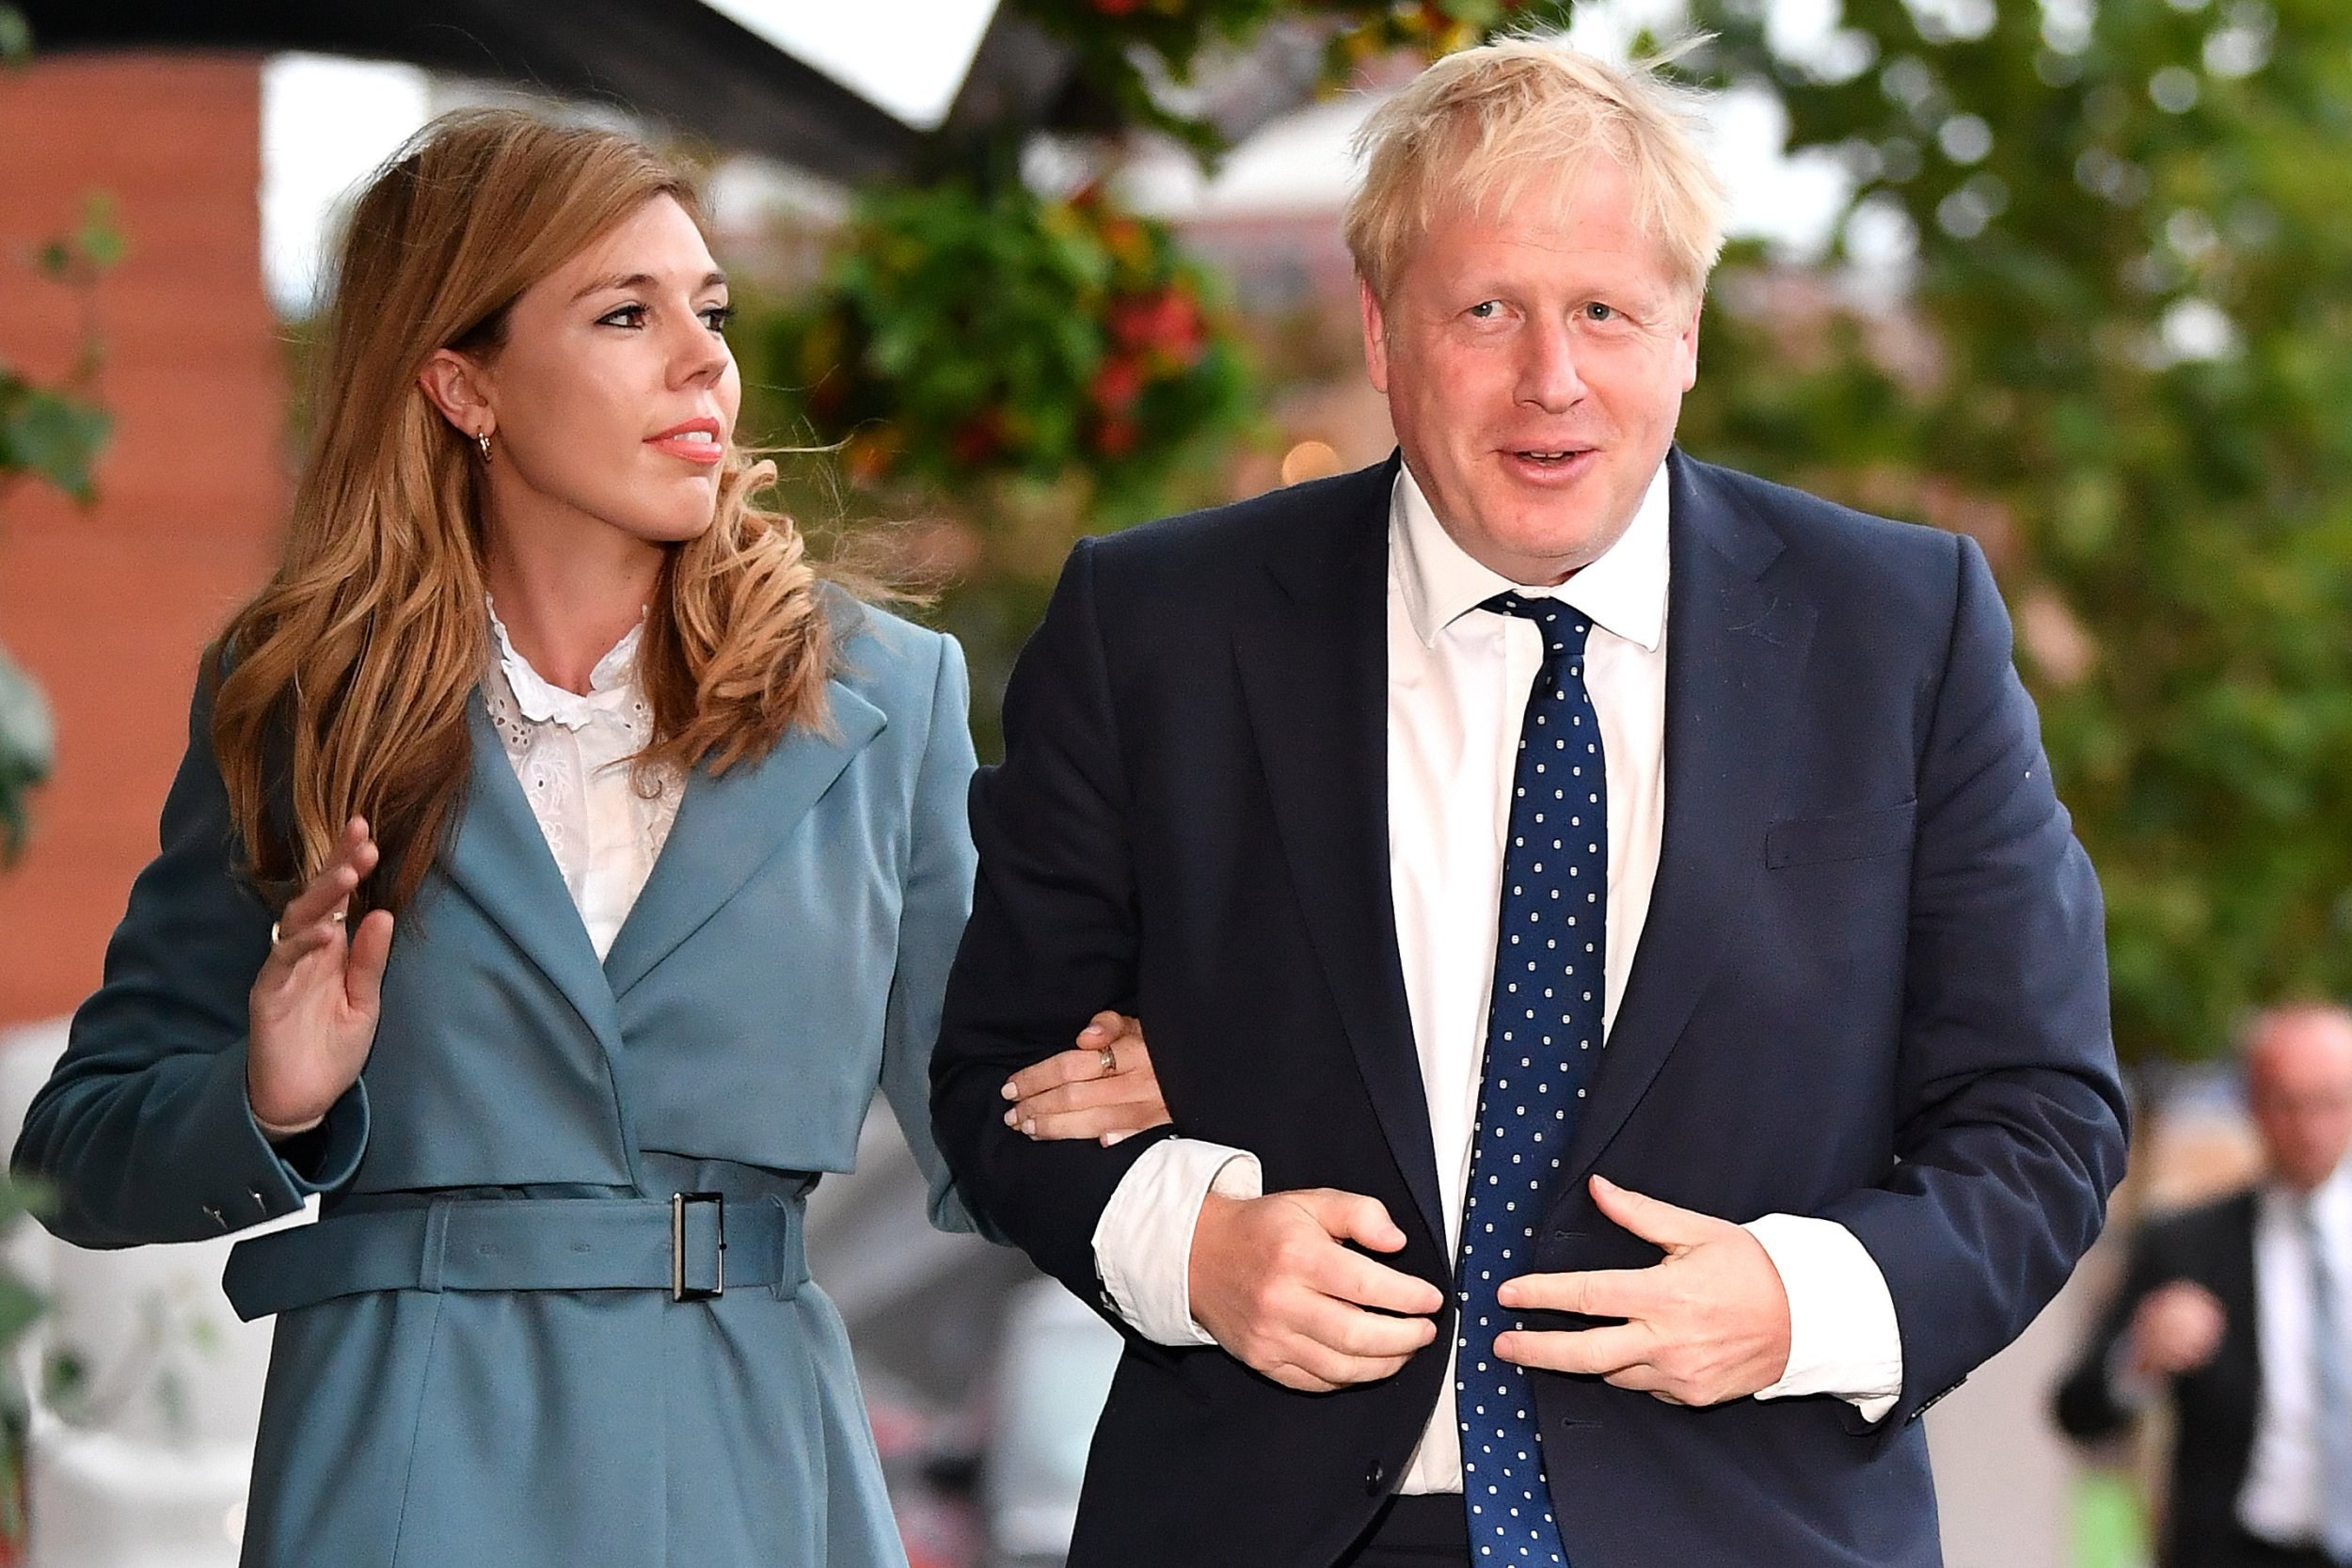 Boris and Carrie name their baby boy Wilfred after PM's grandfather